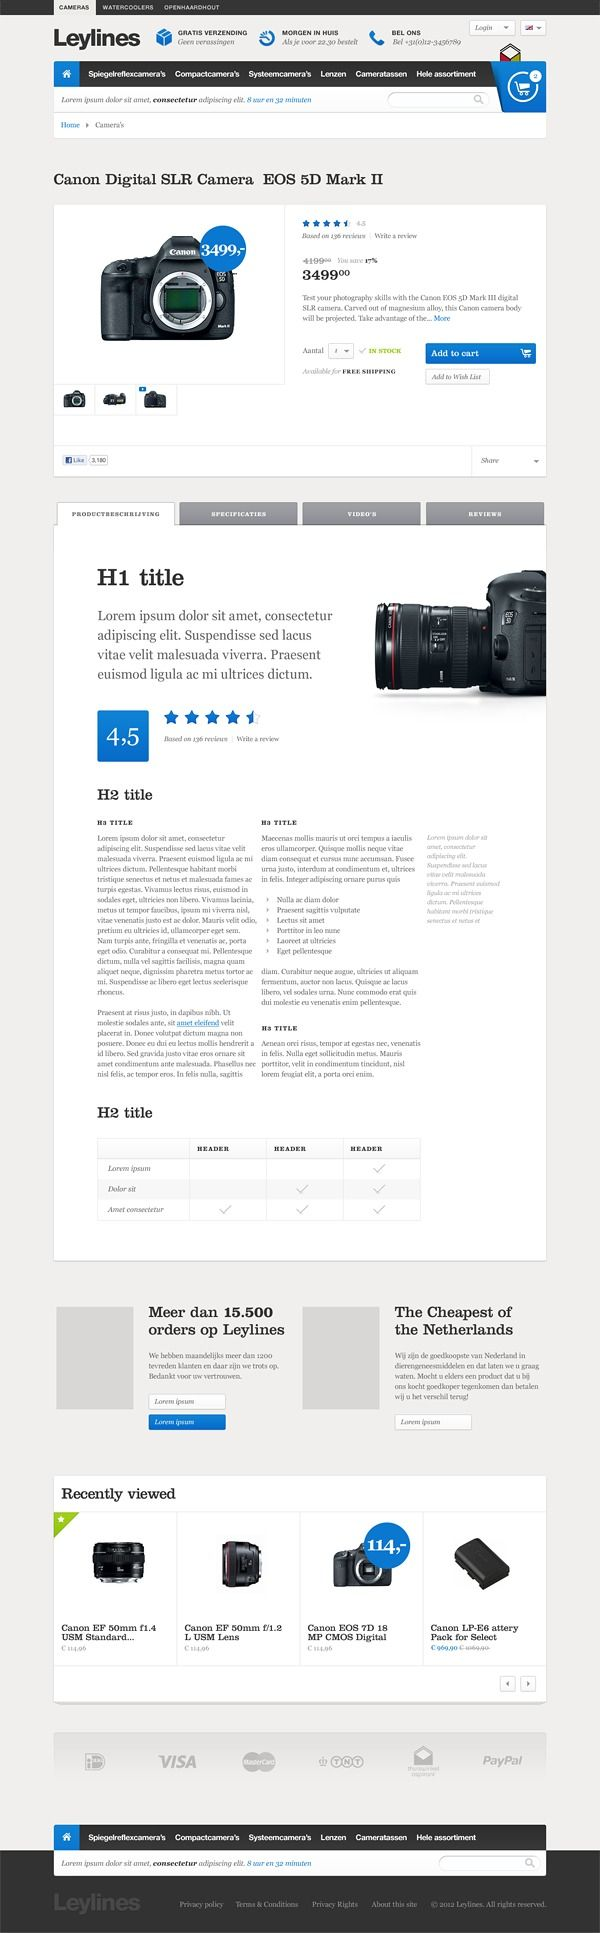 Leylines on Behance in Corporate/interface